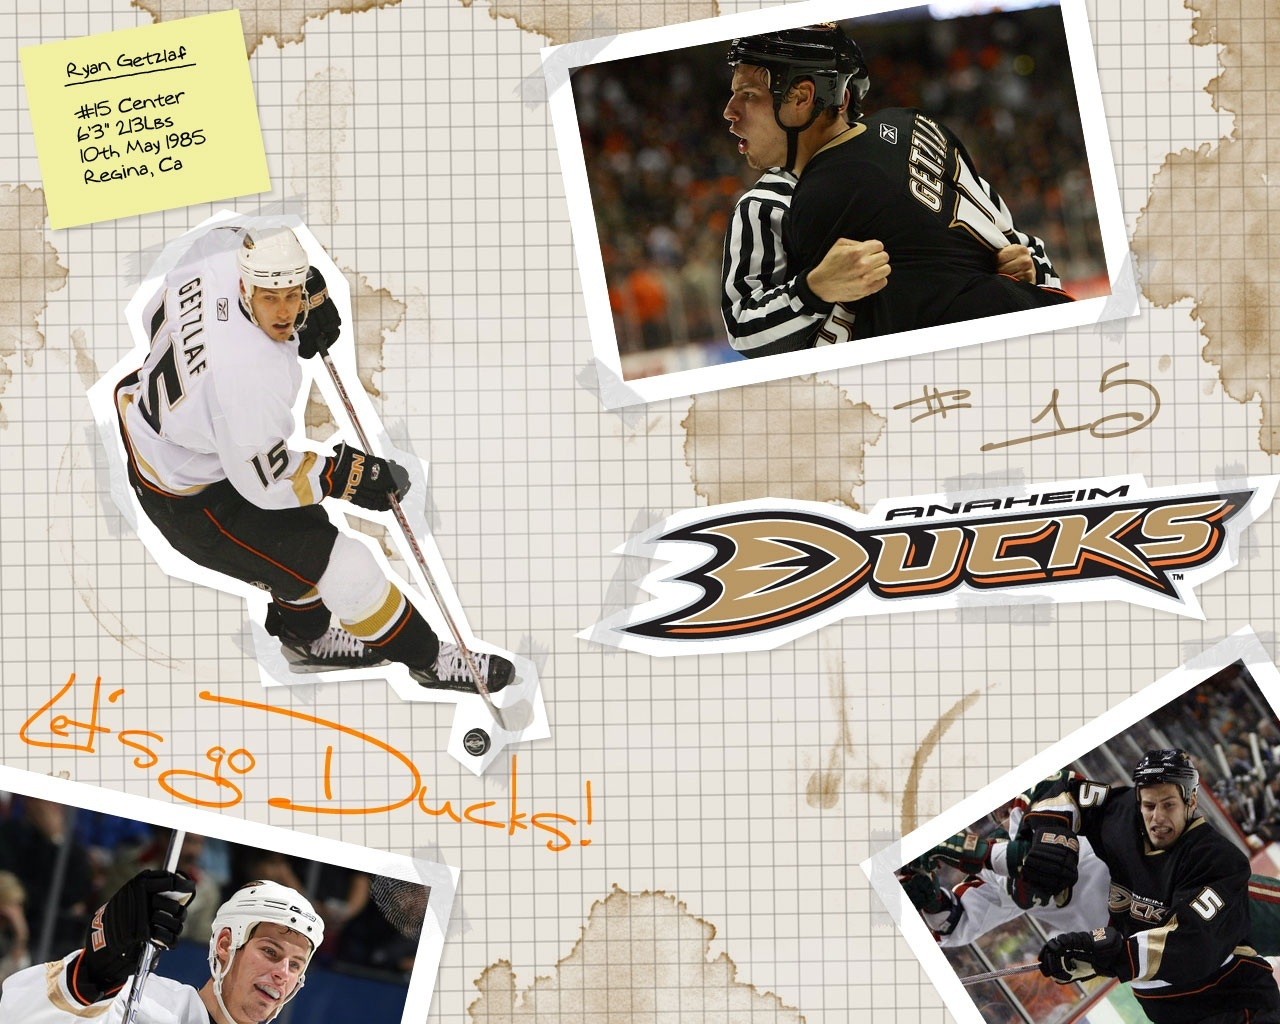 Ryan Getzlaf Ducks Wallpaper Hockeywallpapersnet Wallpaper Photo 1280x1024